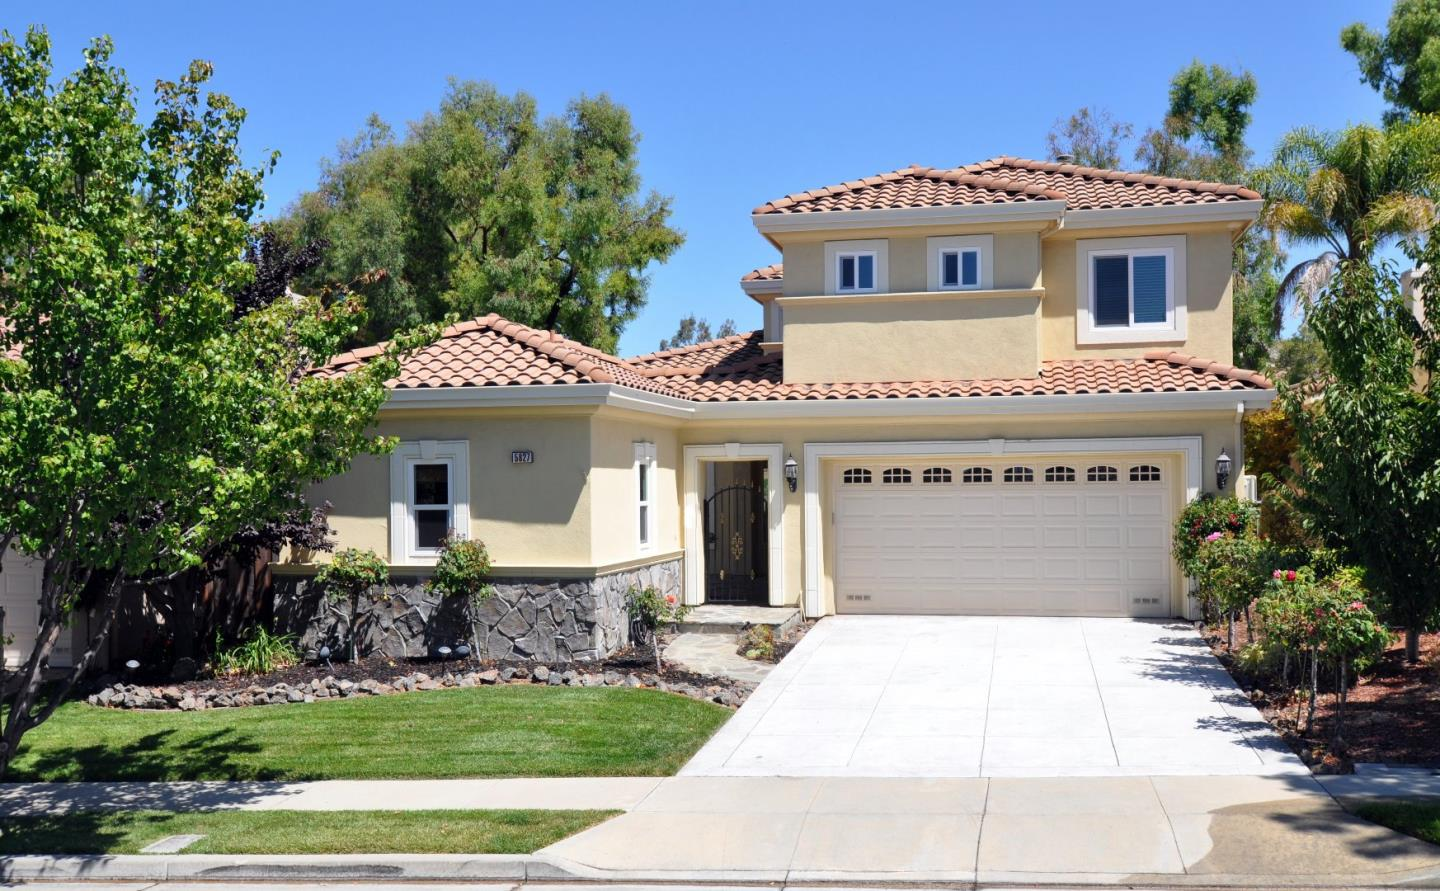 5827 Killarney CIR, Evergreen, California